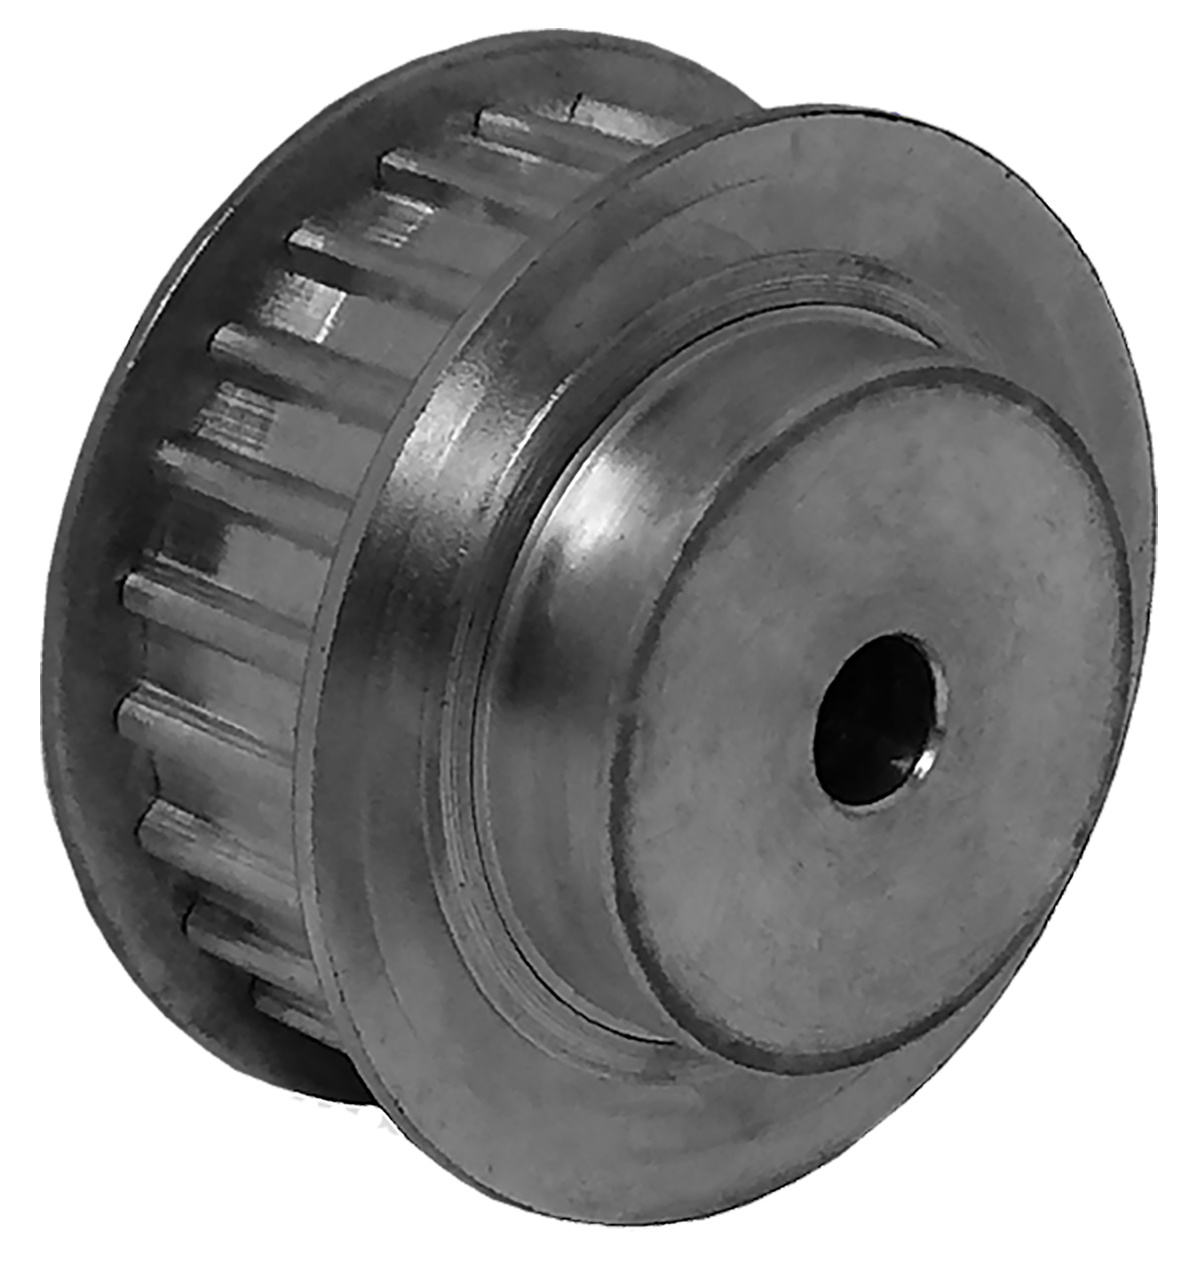 21AT5/24-2 - Aluminum Metric Pulleys